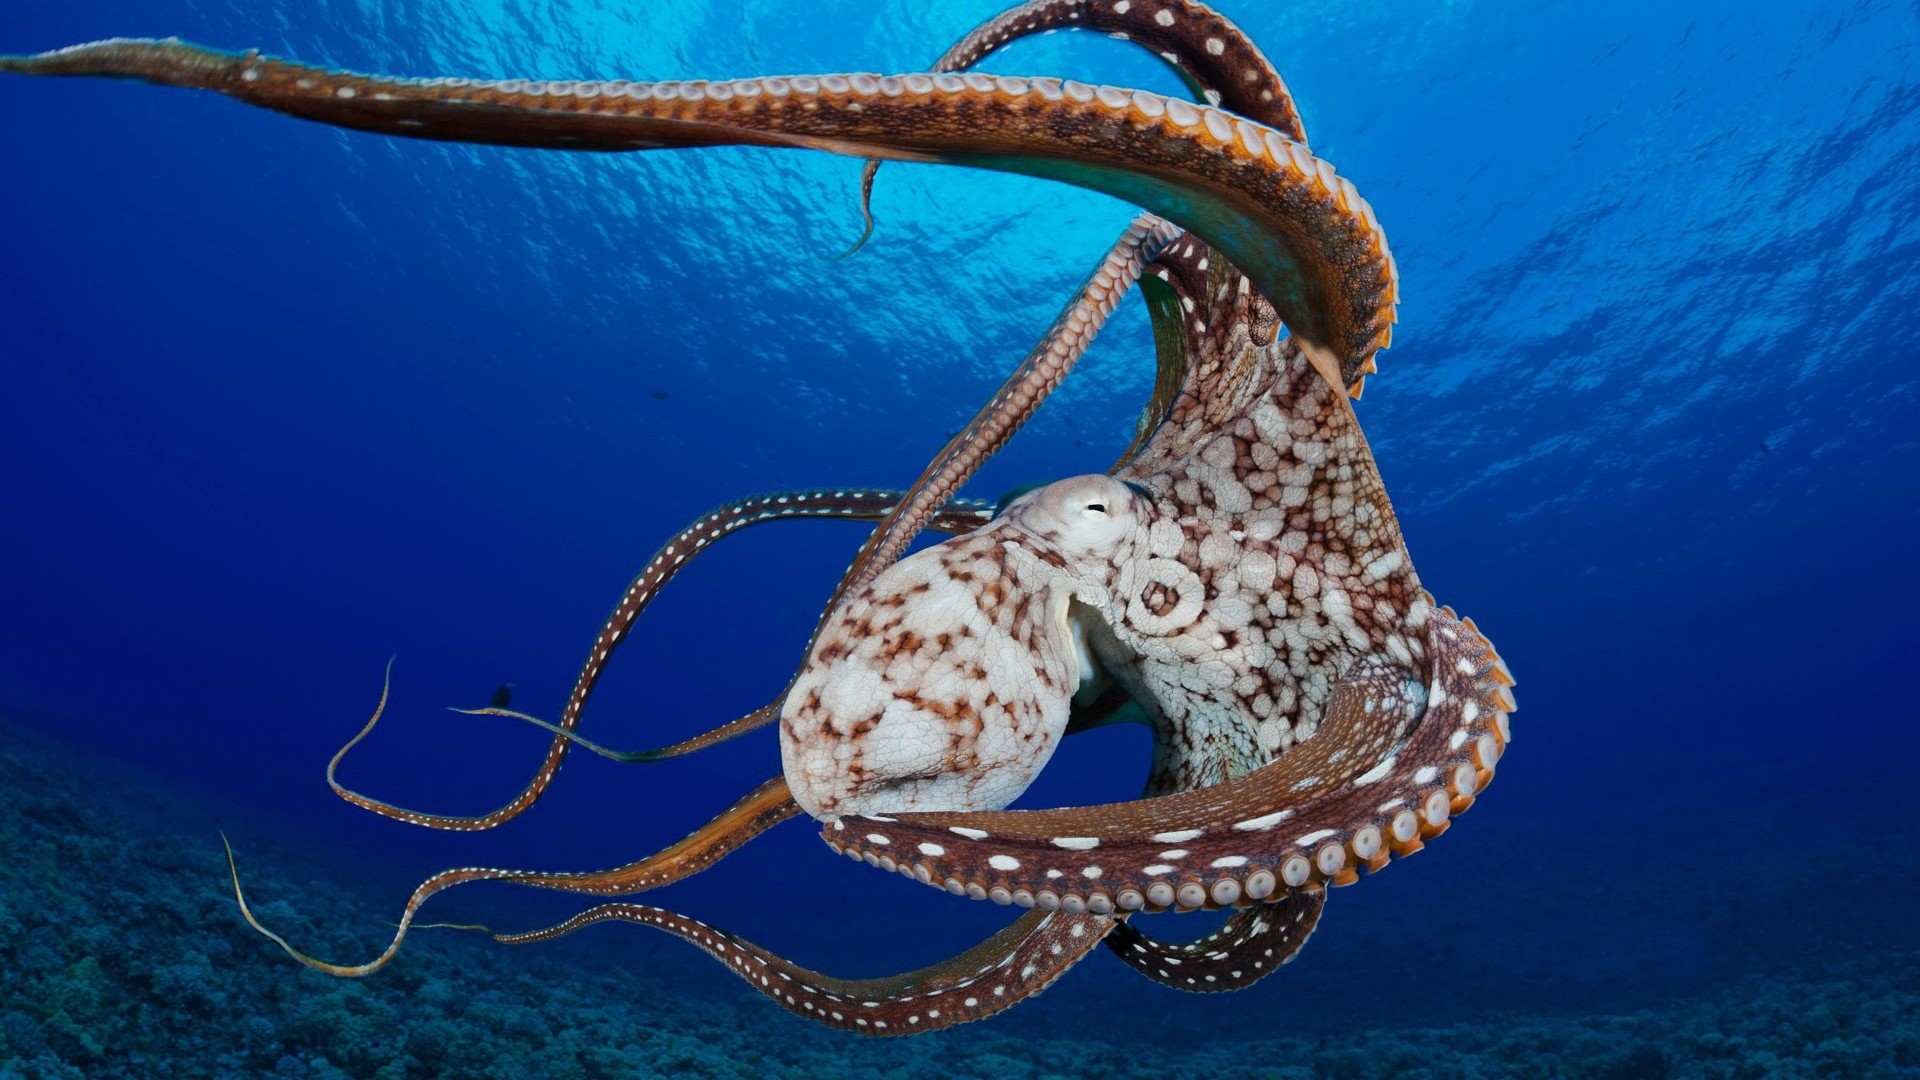 Octopus Background images